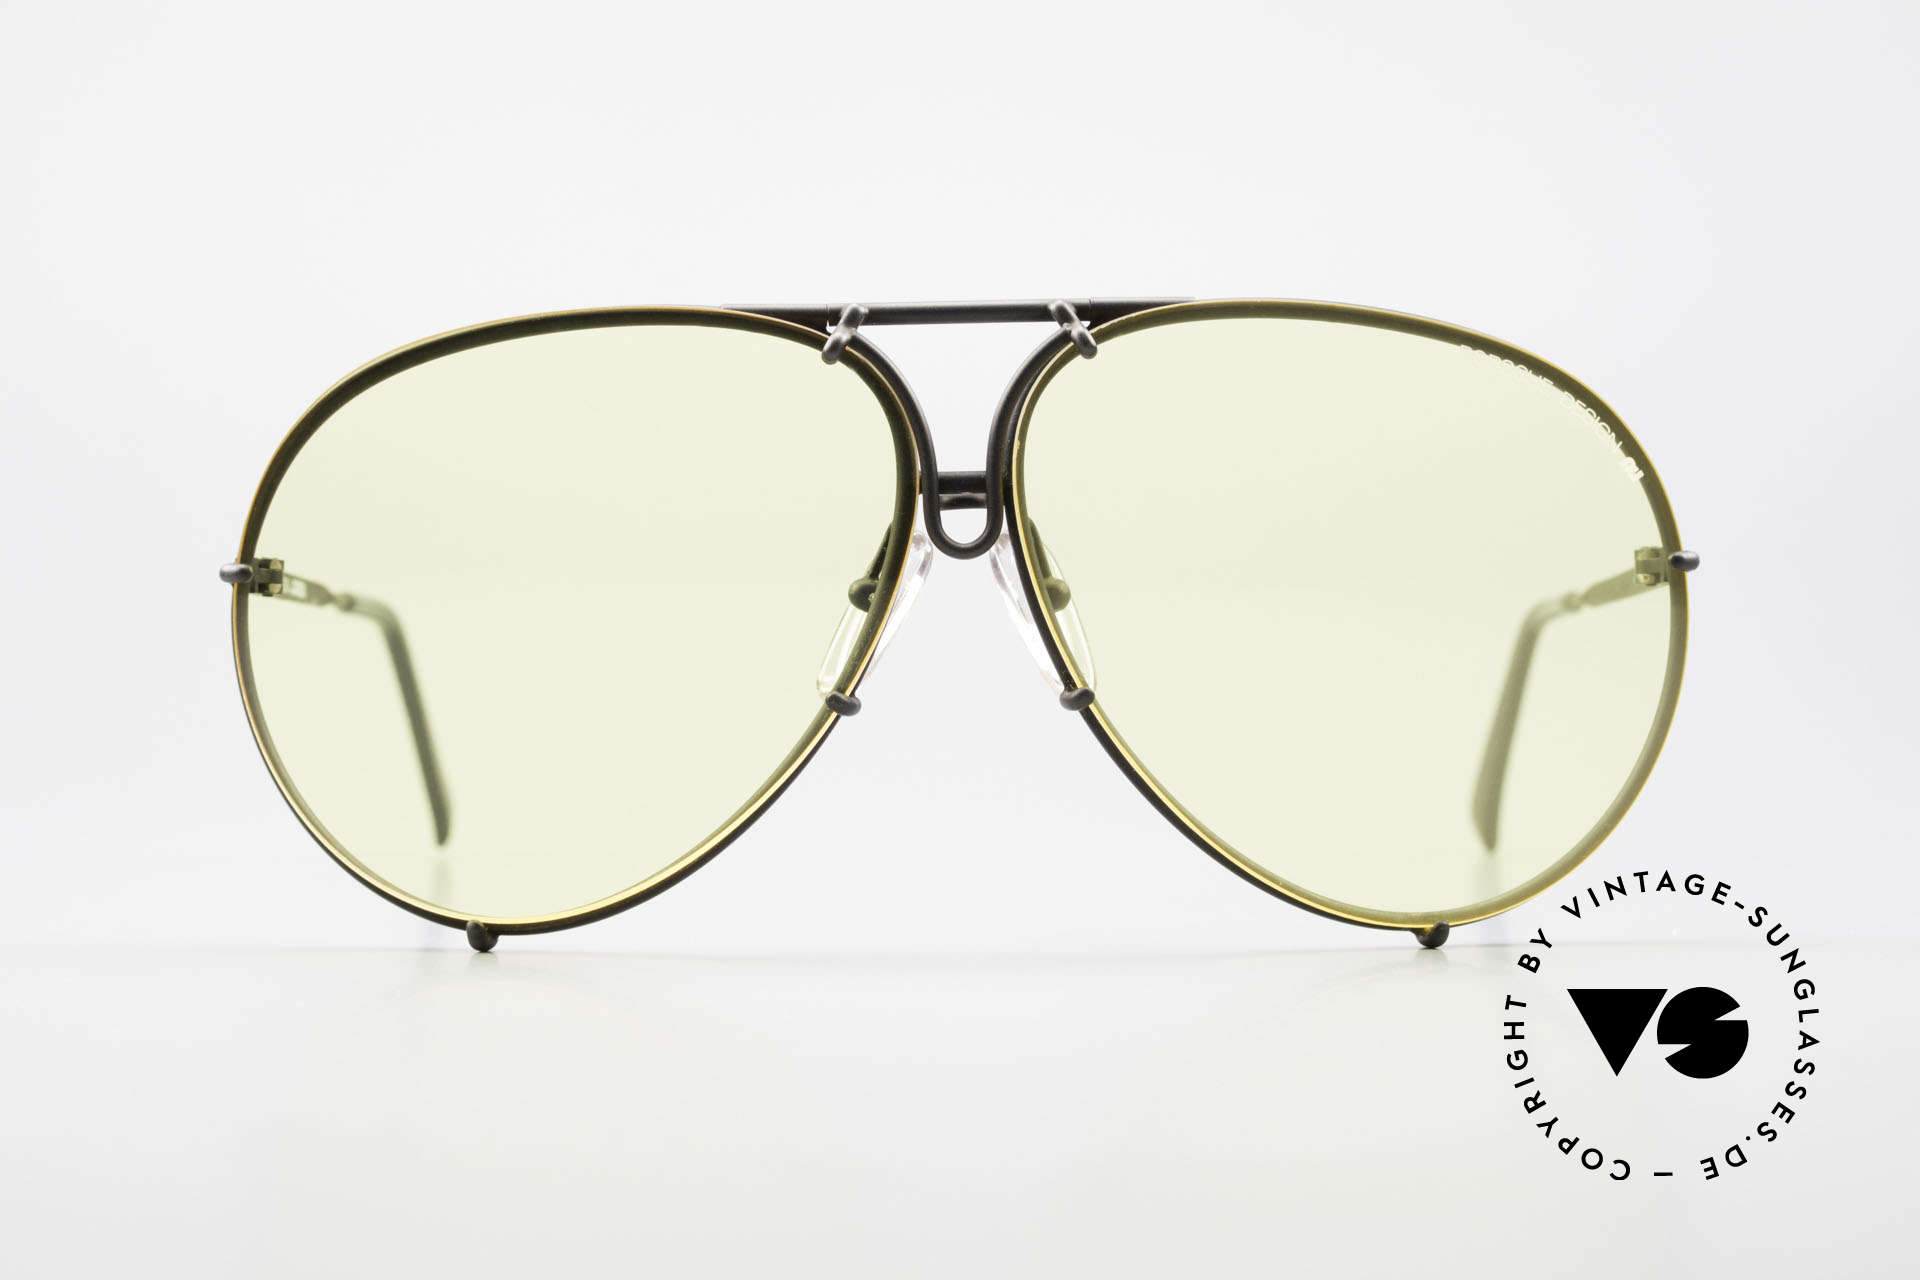 Porsche 5621 Yellow Lenses Kalichrome 80's, a legendary sunglass' classic for men in dulled black, Made for Men